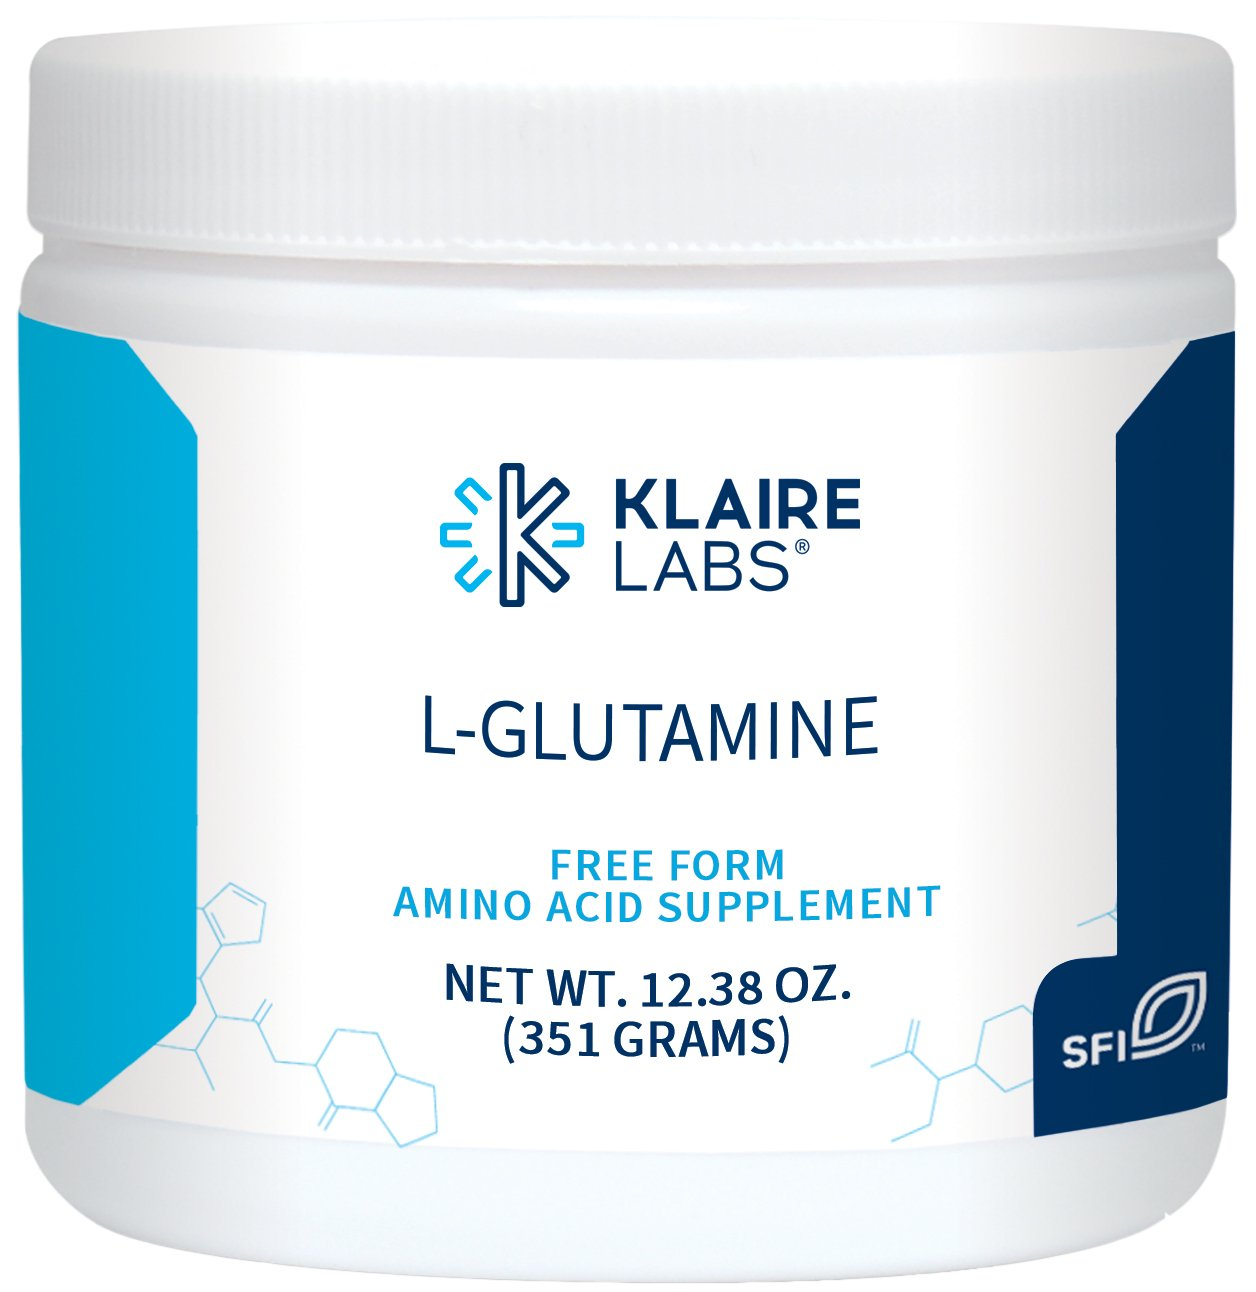 Klaire Labs L-Glutamine Powder - 5000 mg Free-Form & Hypoallergenic Amino Acid Support for Intestinal Immune Function, Dairy & Gluten-Free (351 G / 60 Servings) by Klaire Labs